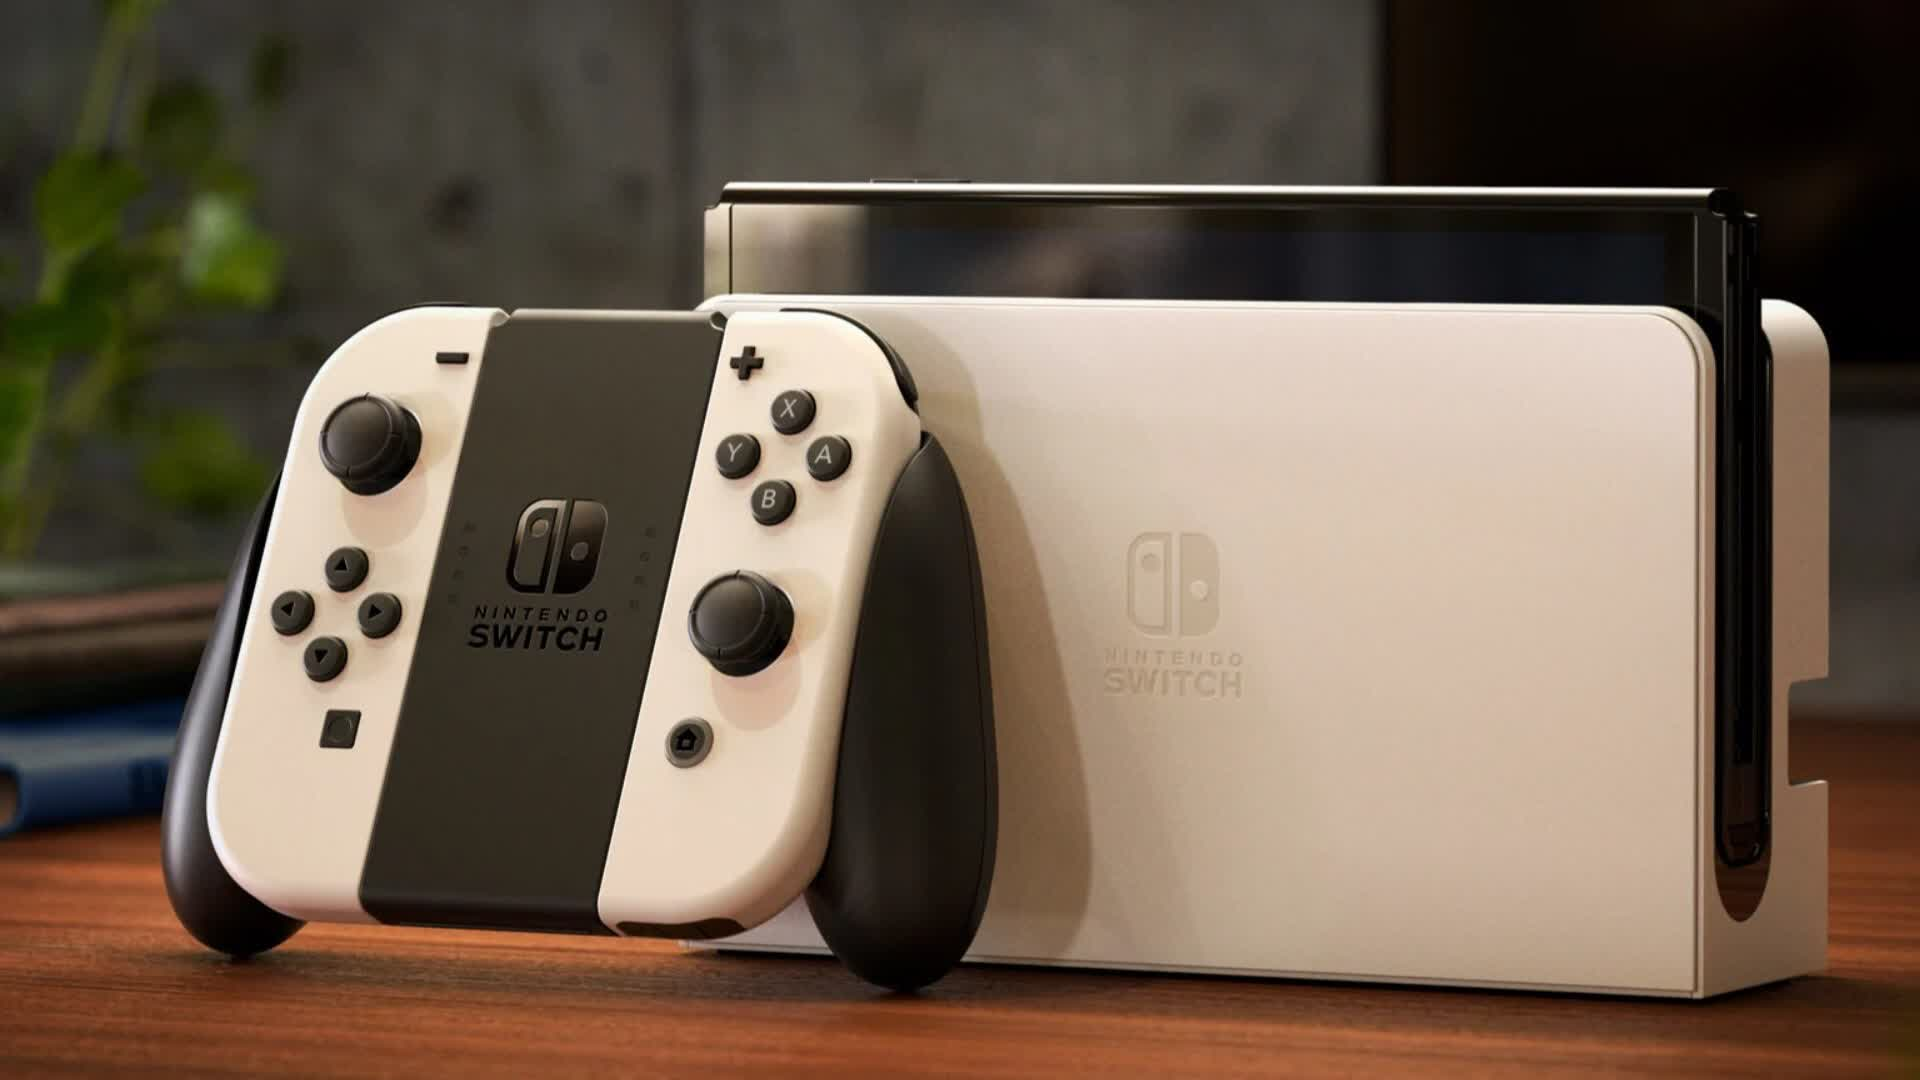 The new Nintendo Switch OLED is $50 more expensive, but only costs $10 extra to make